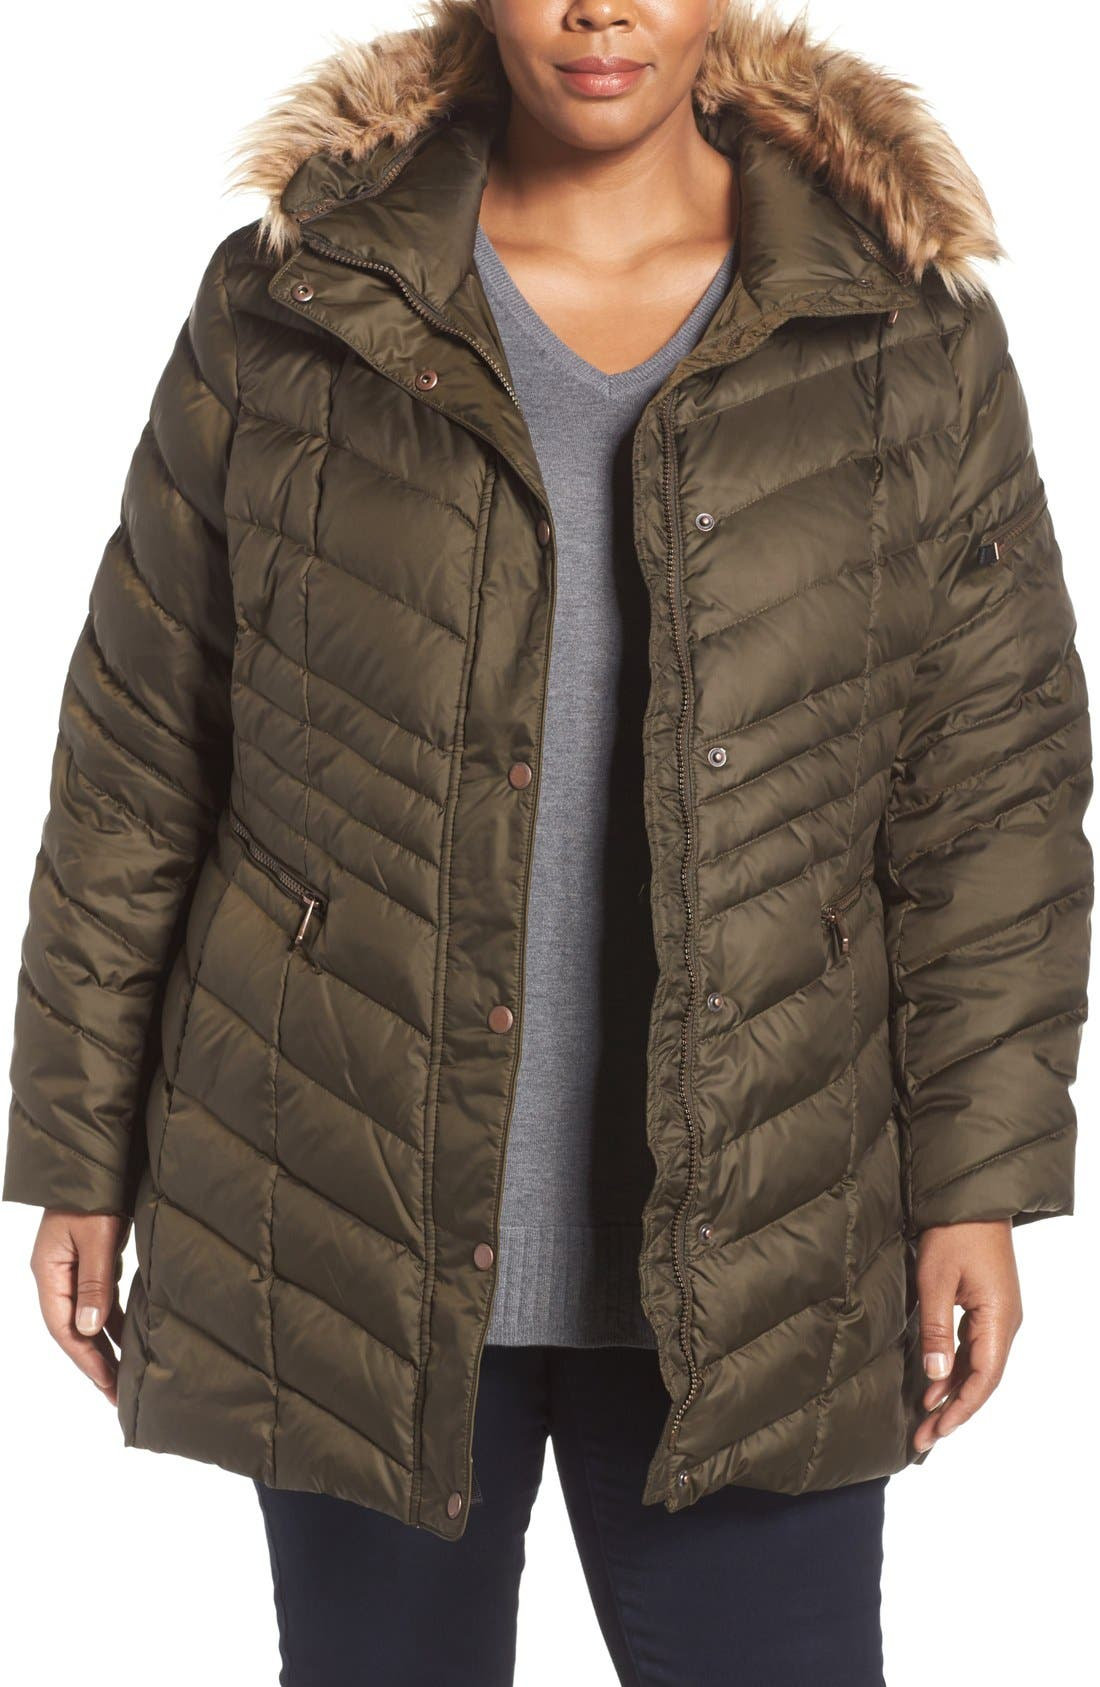 ANDREW MARC 'Renee' Chevron Quilted Coat with Faux